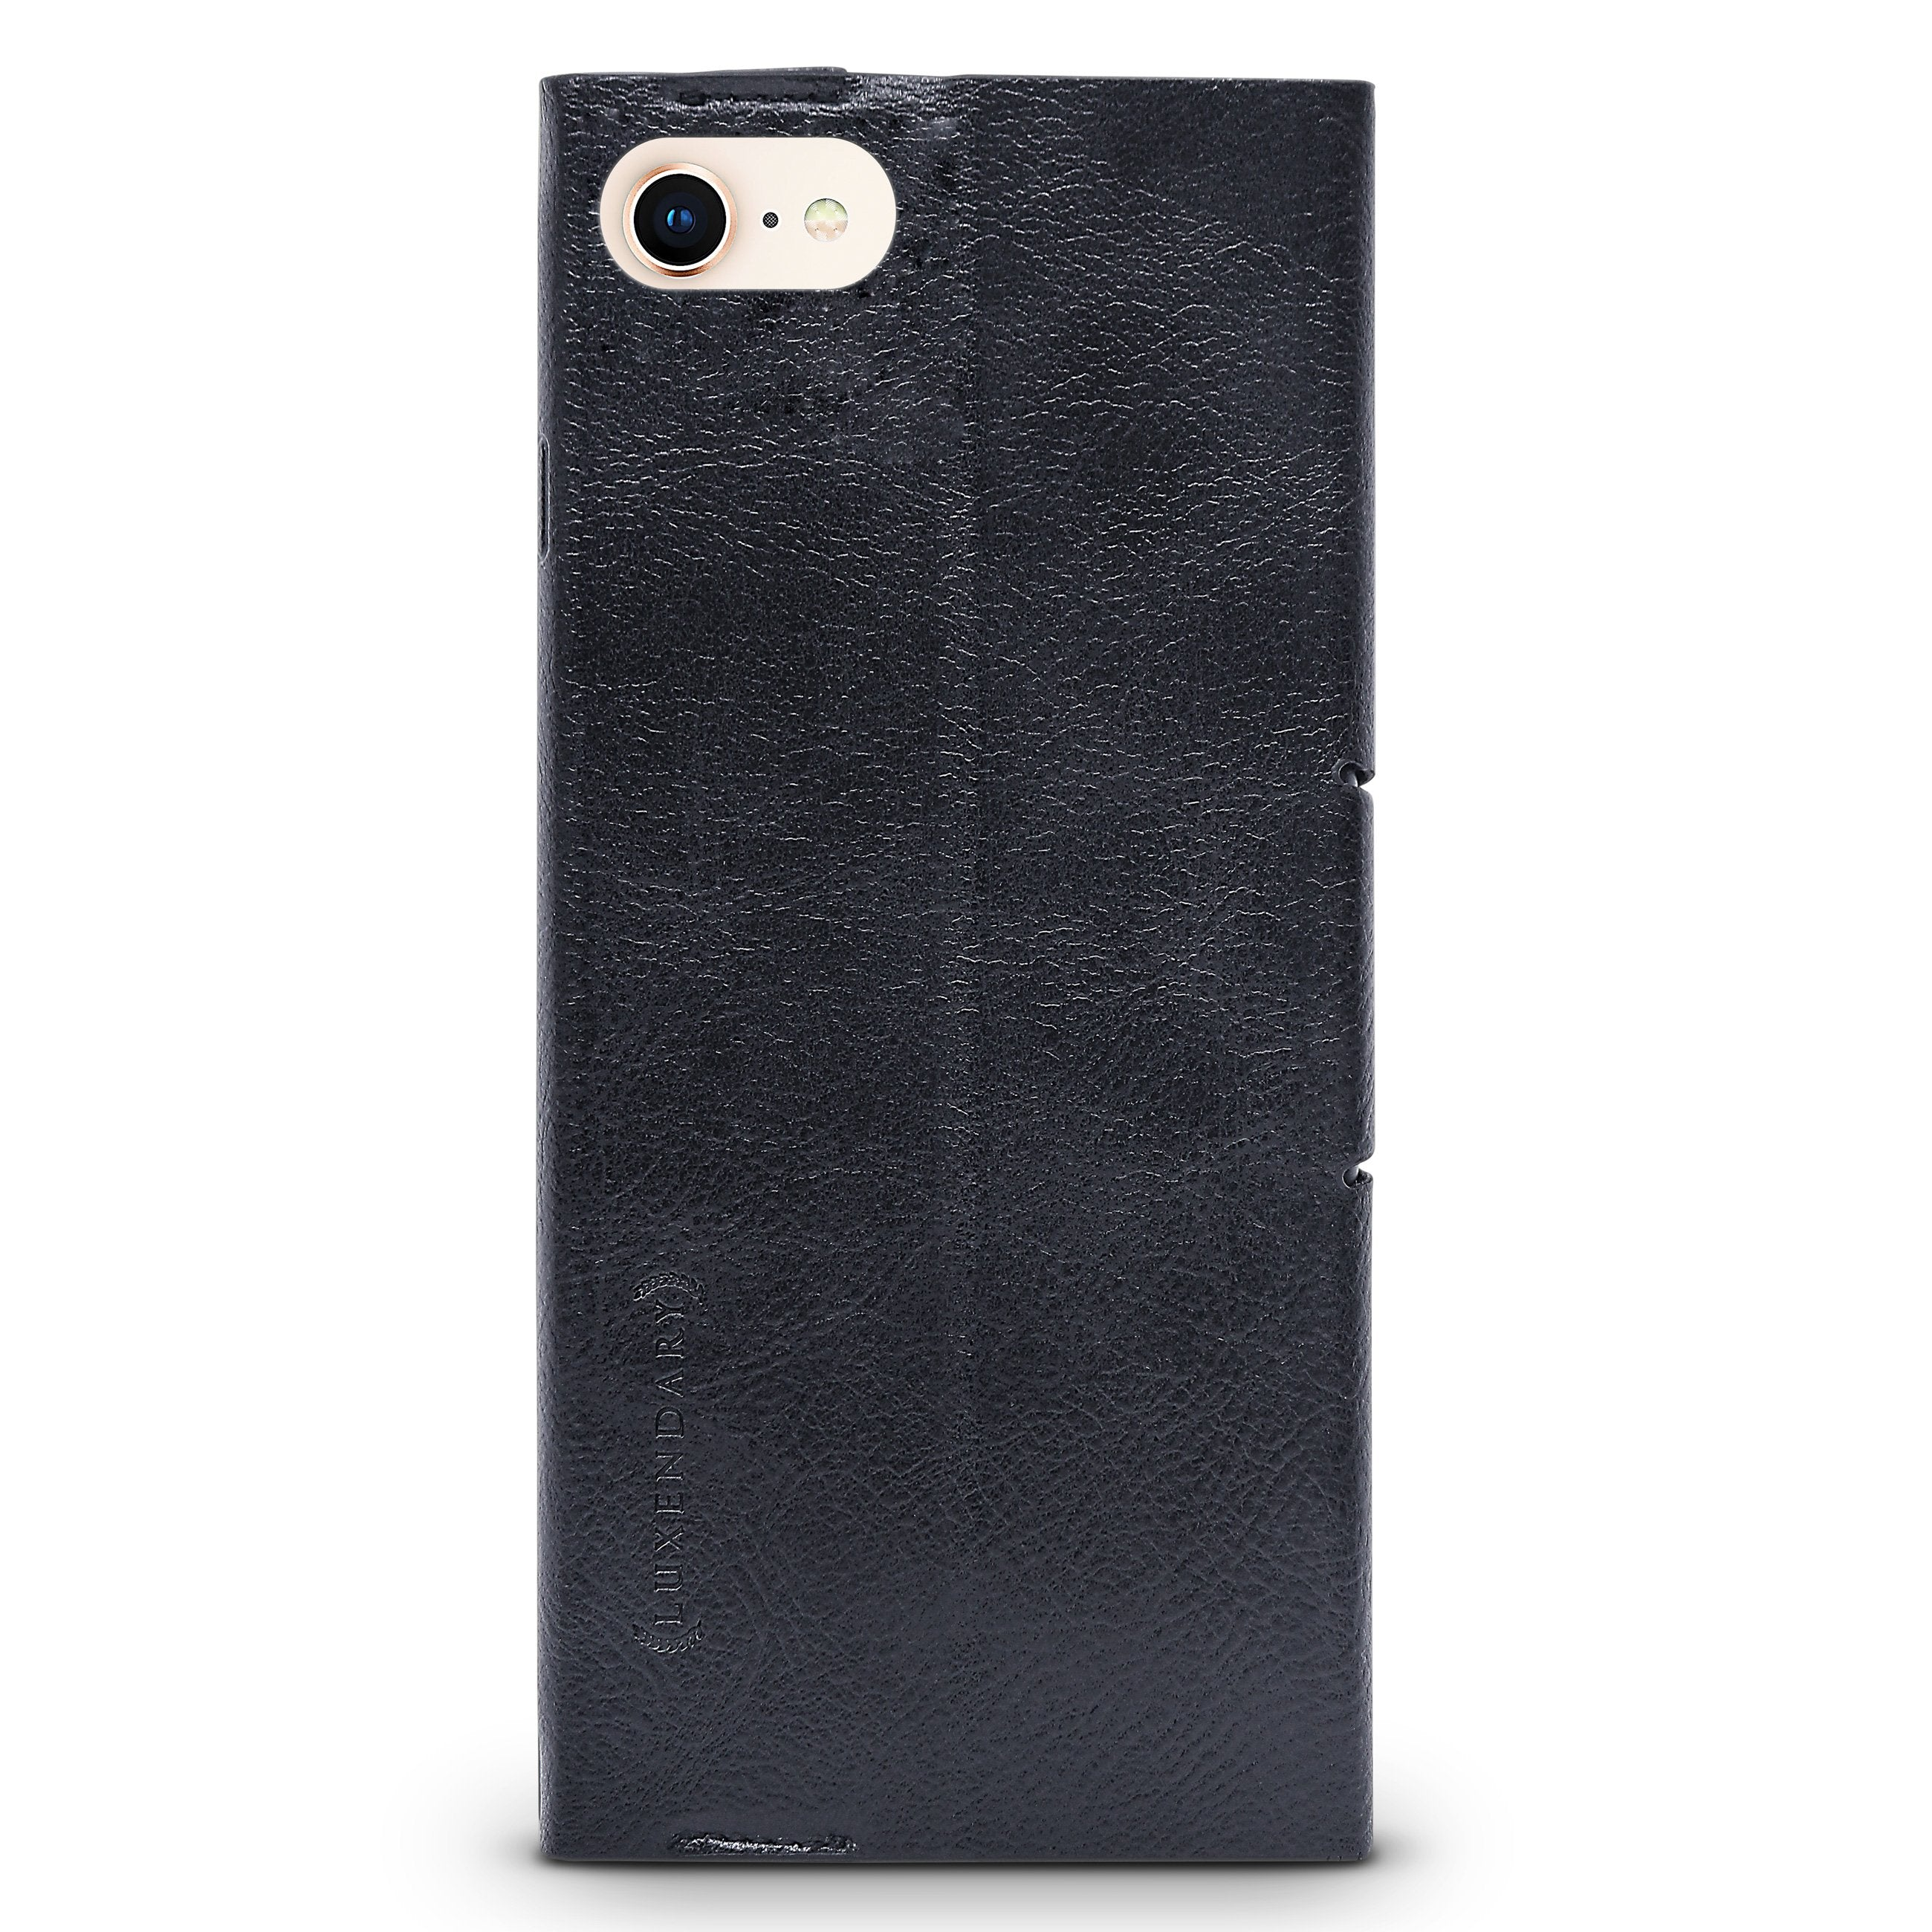 Annette, Hand-Written First Name | Leather Series case for iPhone 8/7/6/6s in Hickory Black